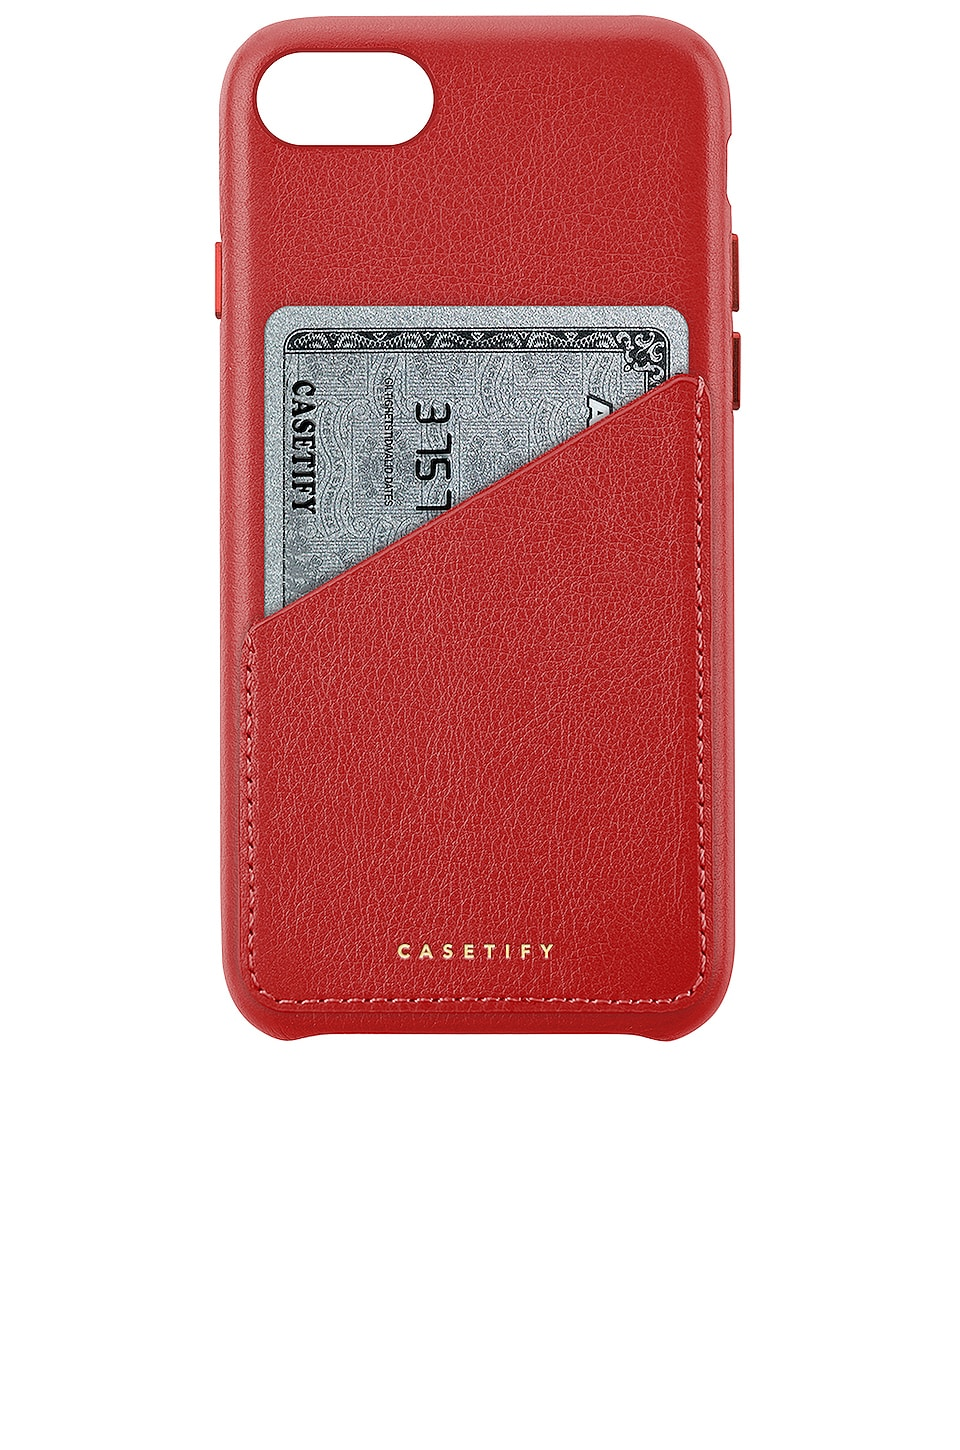 LEATHER CARD IPHONE 6/7/8 CASE